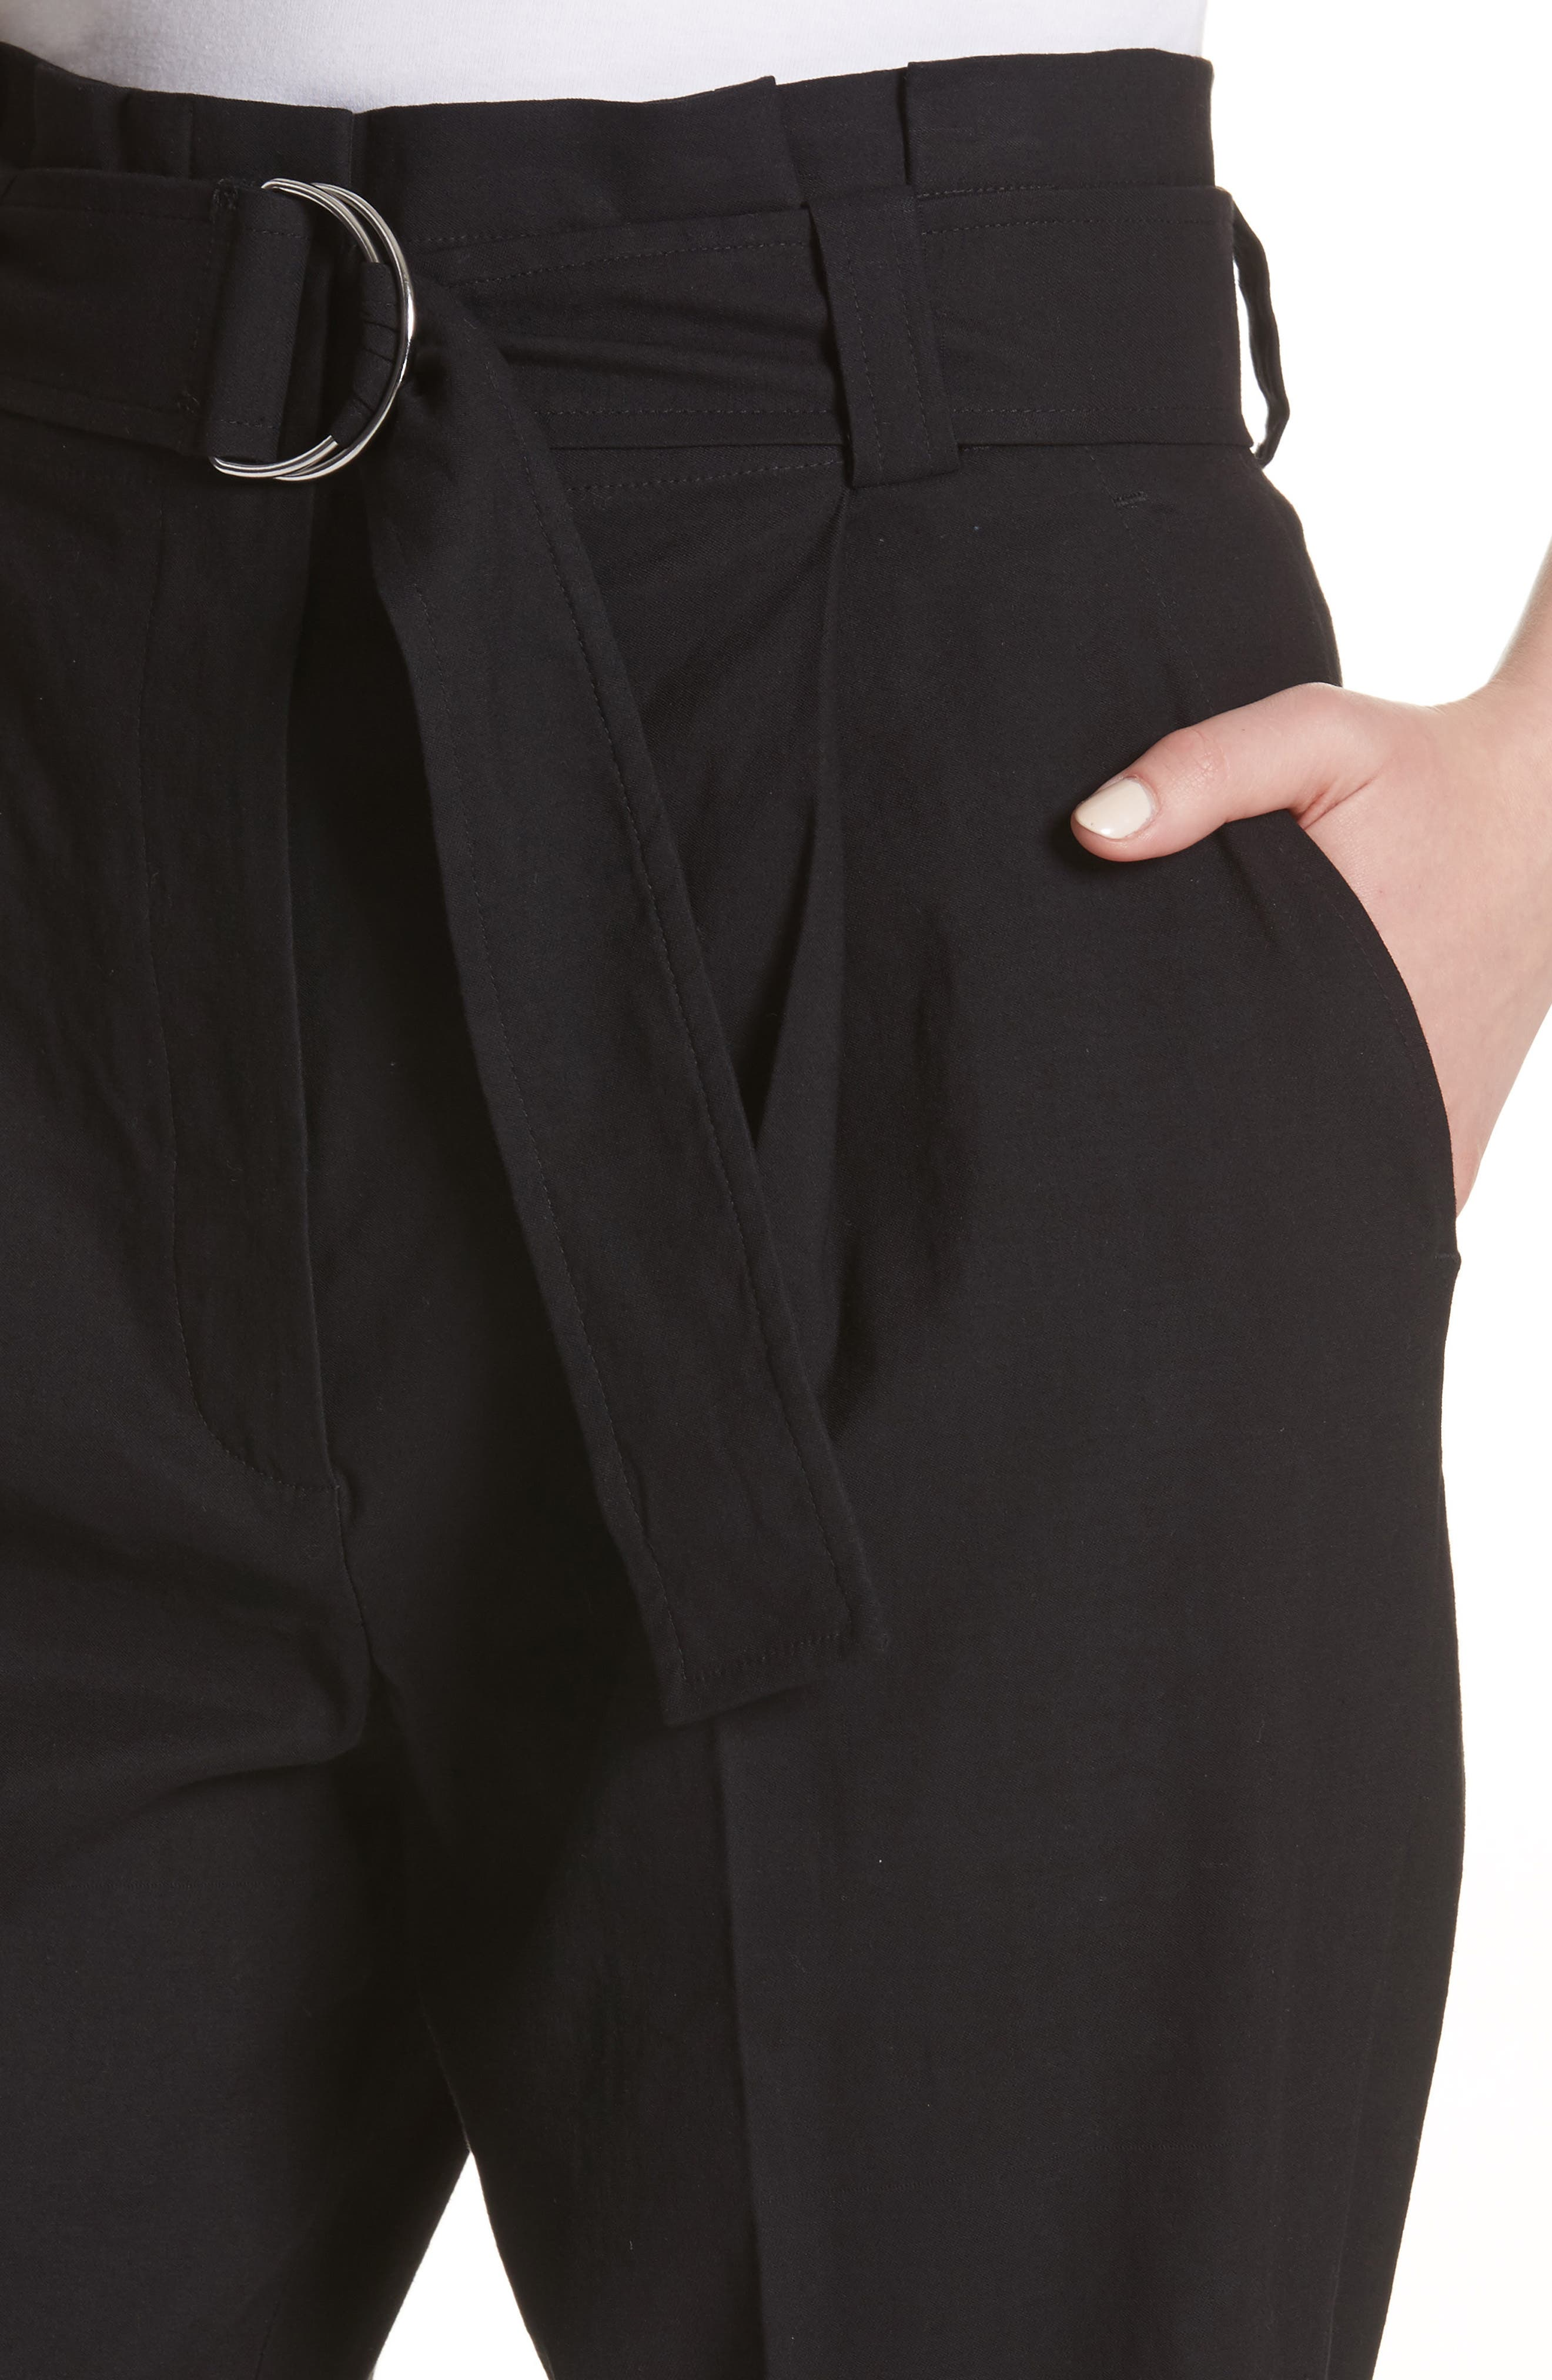 Diego High Waist Pants,                             Alternate thumbnail 4, color,                             Black